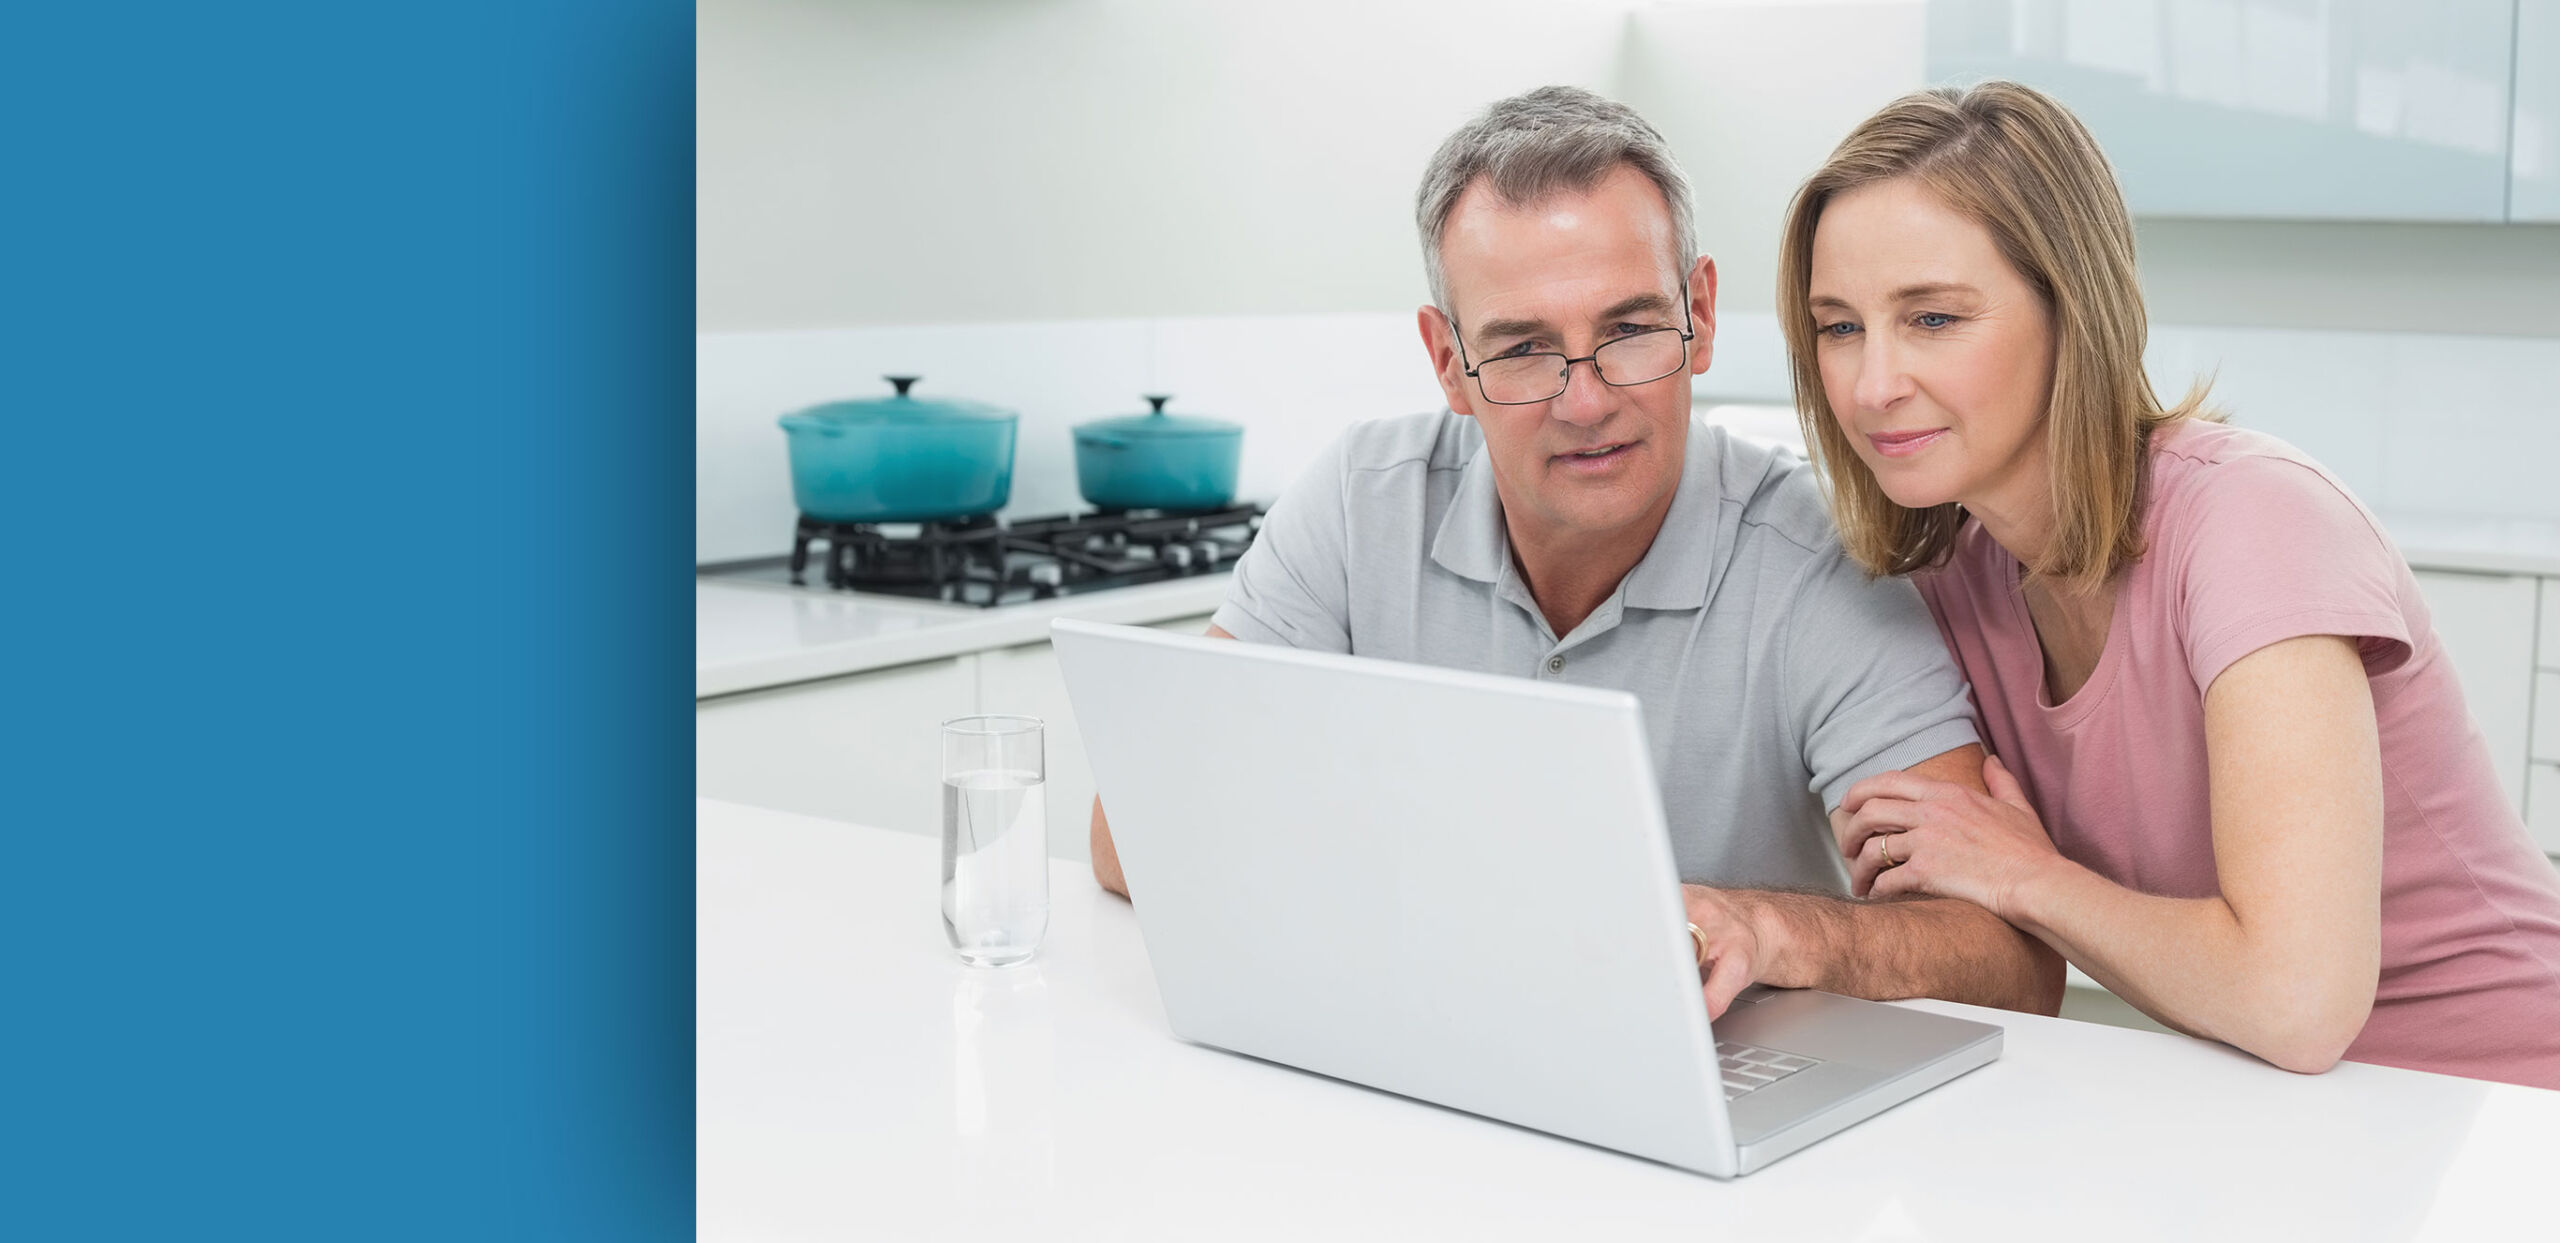 Man and woman looking at laptop computer in their kitchen, Cooley Dickinson Medical Group Plastic Surgery, Florence, MA 01062.